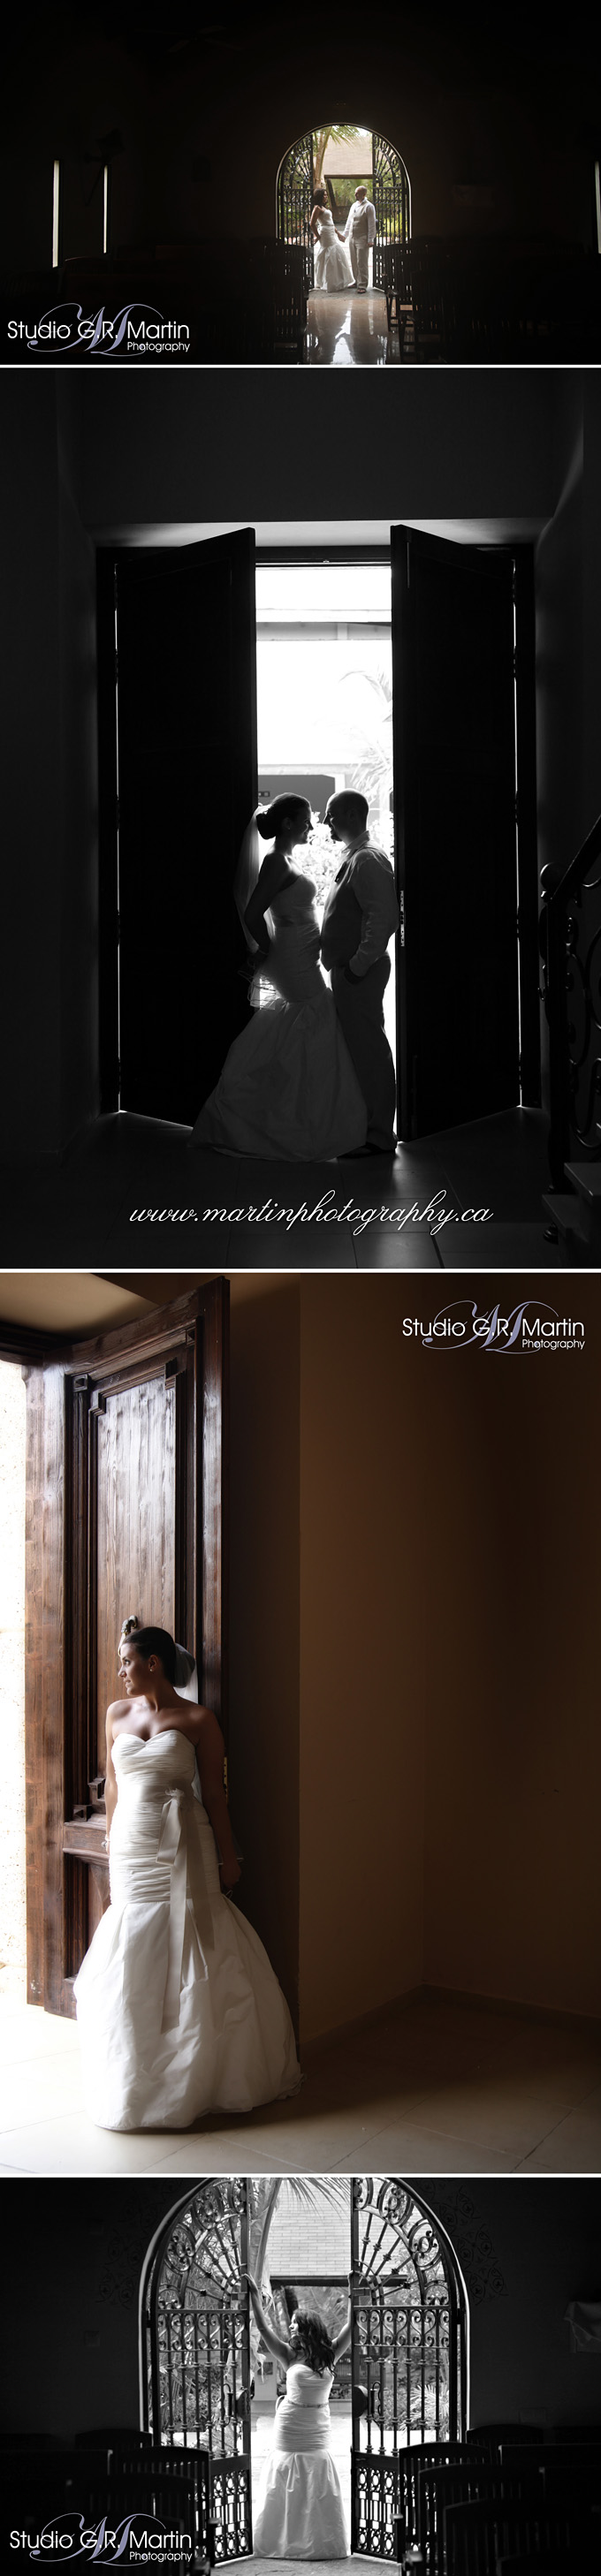 Punta Cana Destination Wedding - Ottawa wedding photographers Majestic Elegance Wedding